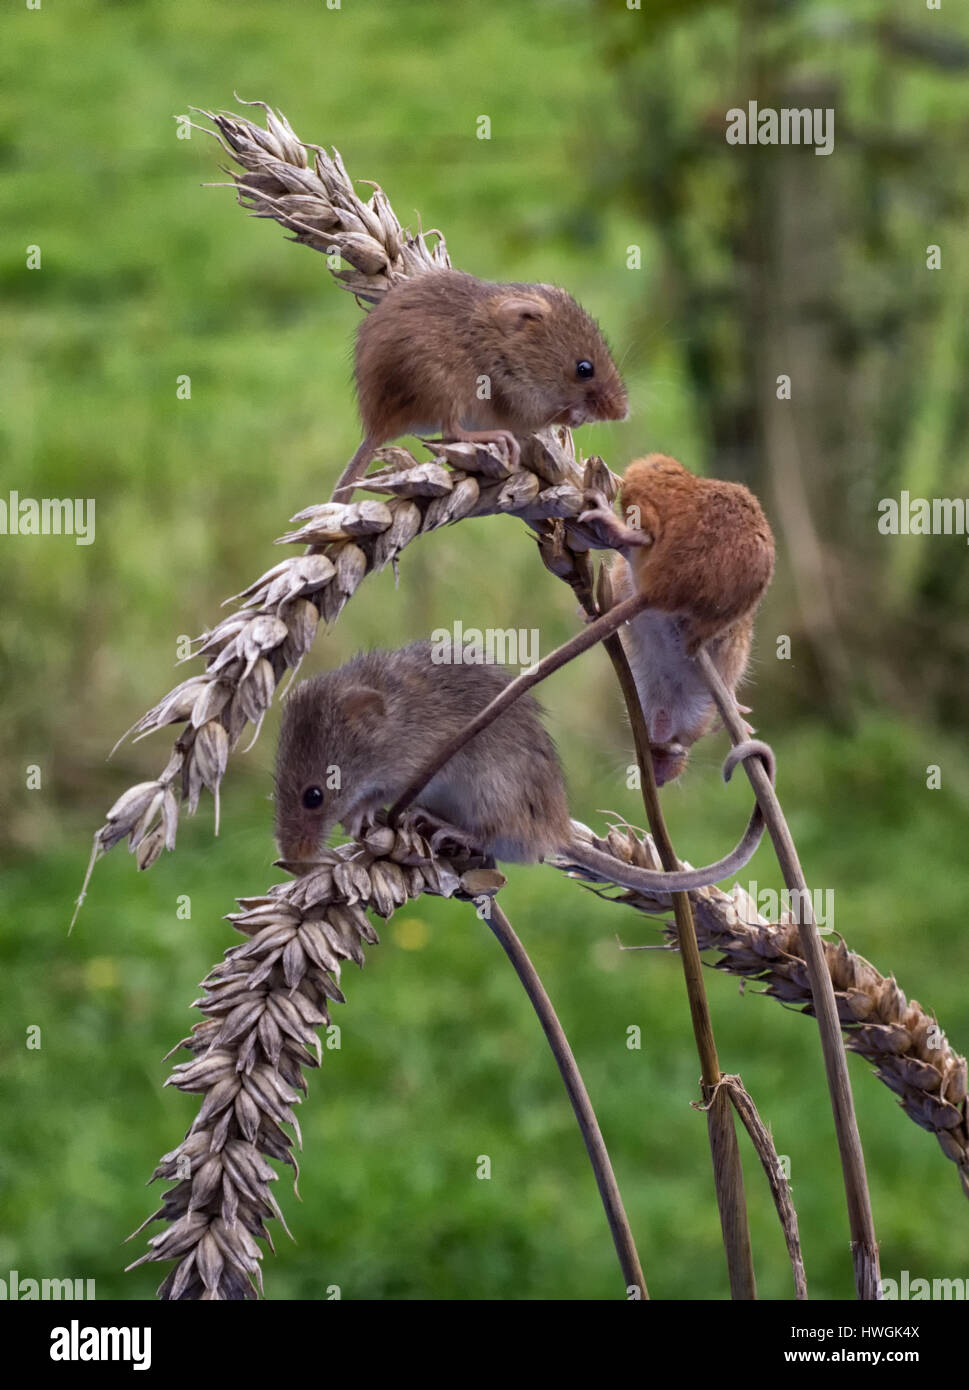 A group of three wild harvest mice feeding on ears of corn set in a natural background and in upright vertical format - Stock Image